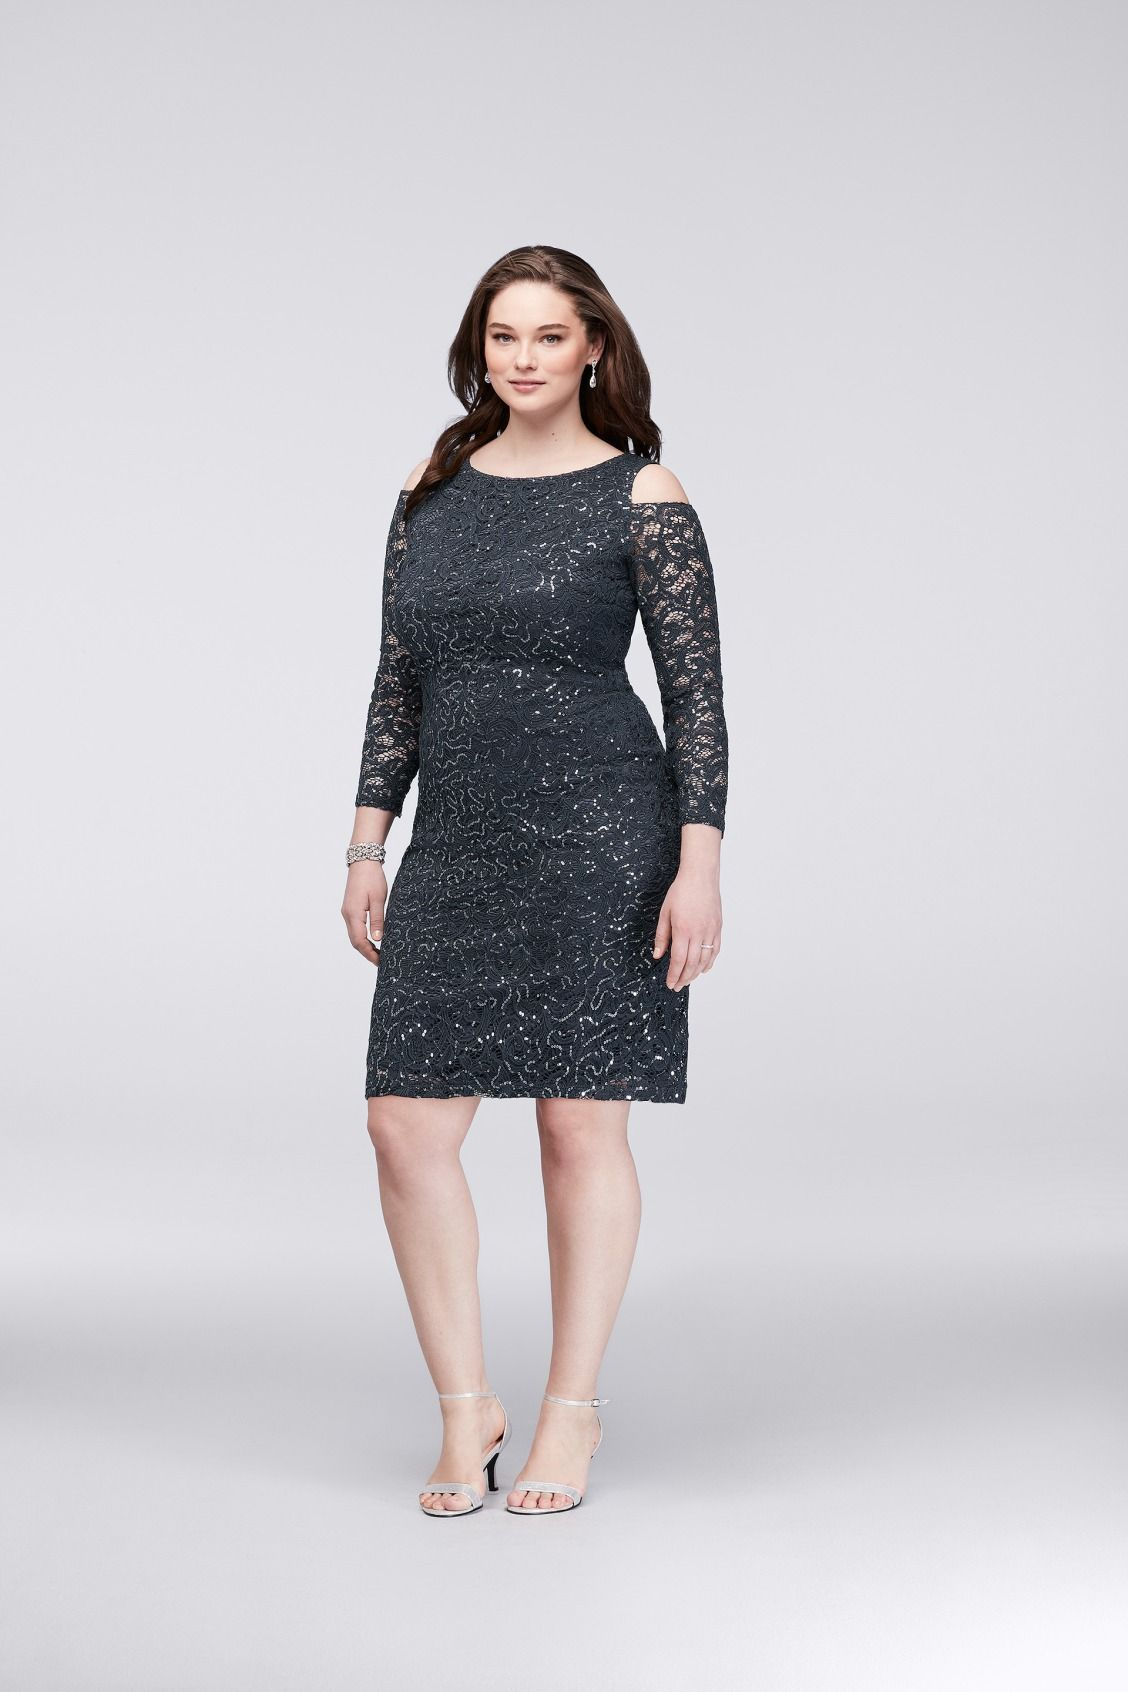 270eb5b9f07 Cold-Shoulder Lace Plus Size Cocktail Mother of the Bride Dress available  at David s Bridal